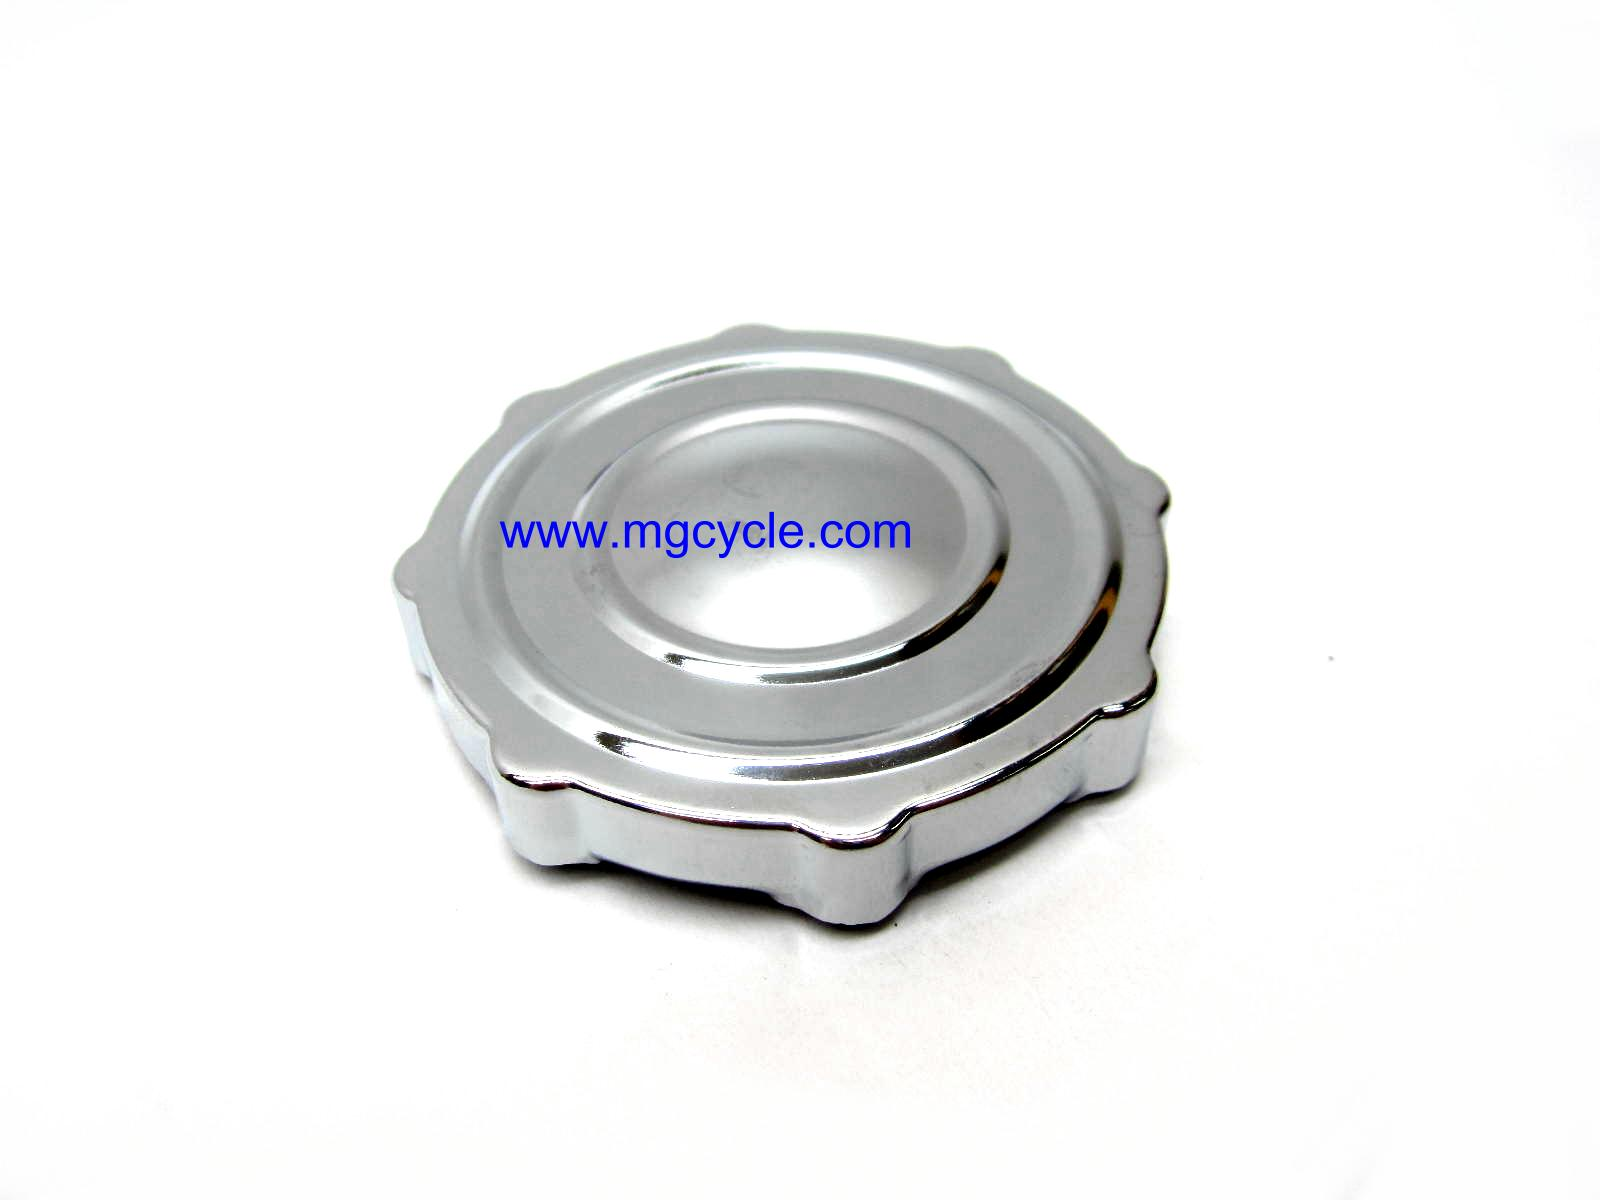 fuel tank cap, low profile, vented, chrome, many models